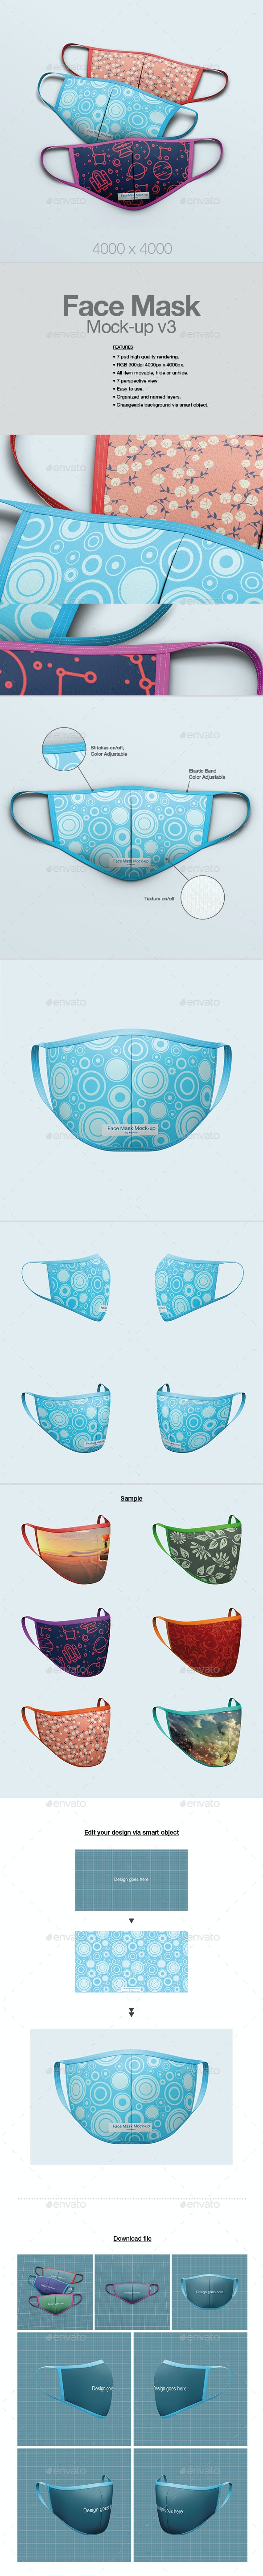 Face Mask Mock-up v3 - Miscellaneous Graphics